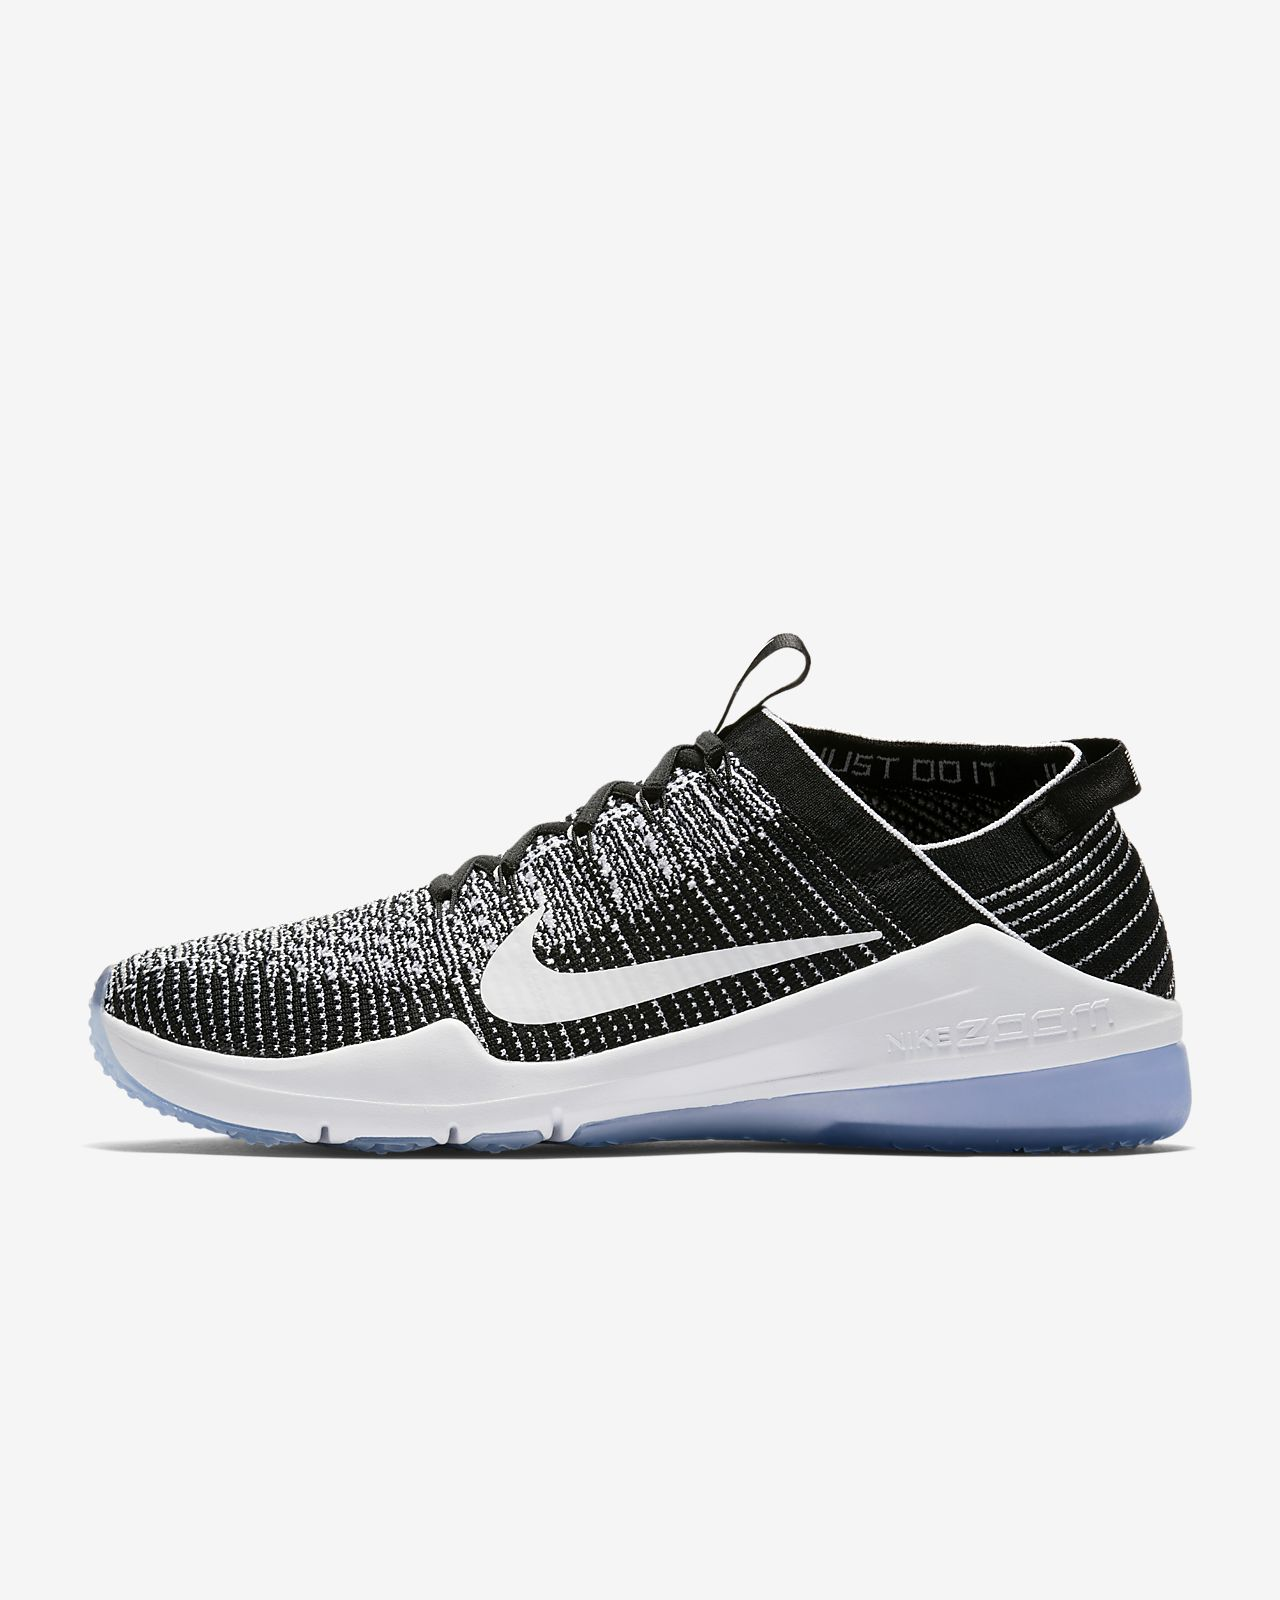 Nike Air Zoom Fearless Flyknit 2 Women s Gym Training Boxing Shoe ... 98938fad0